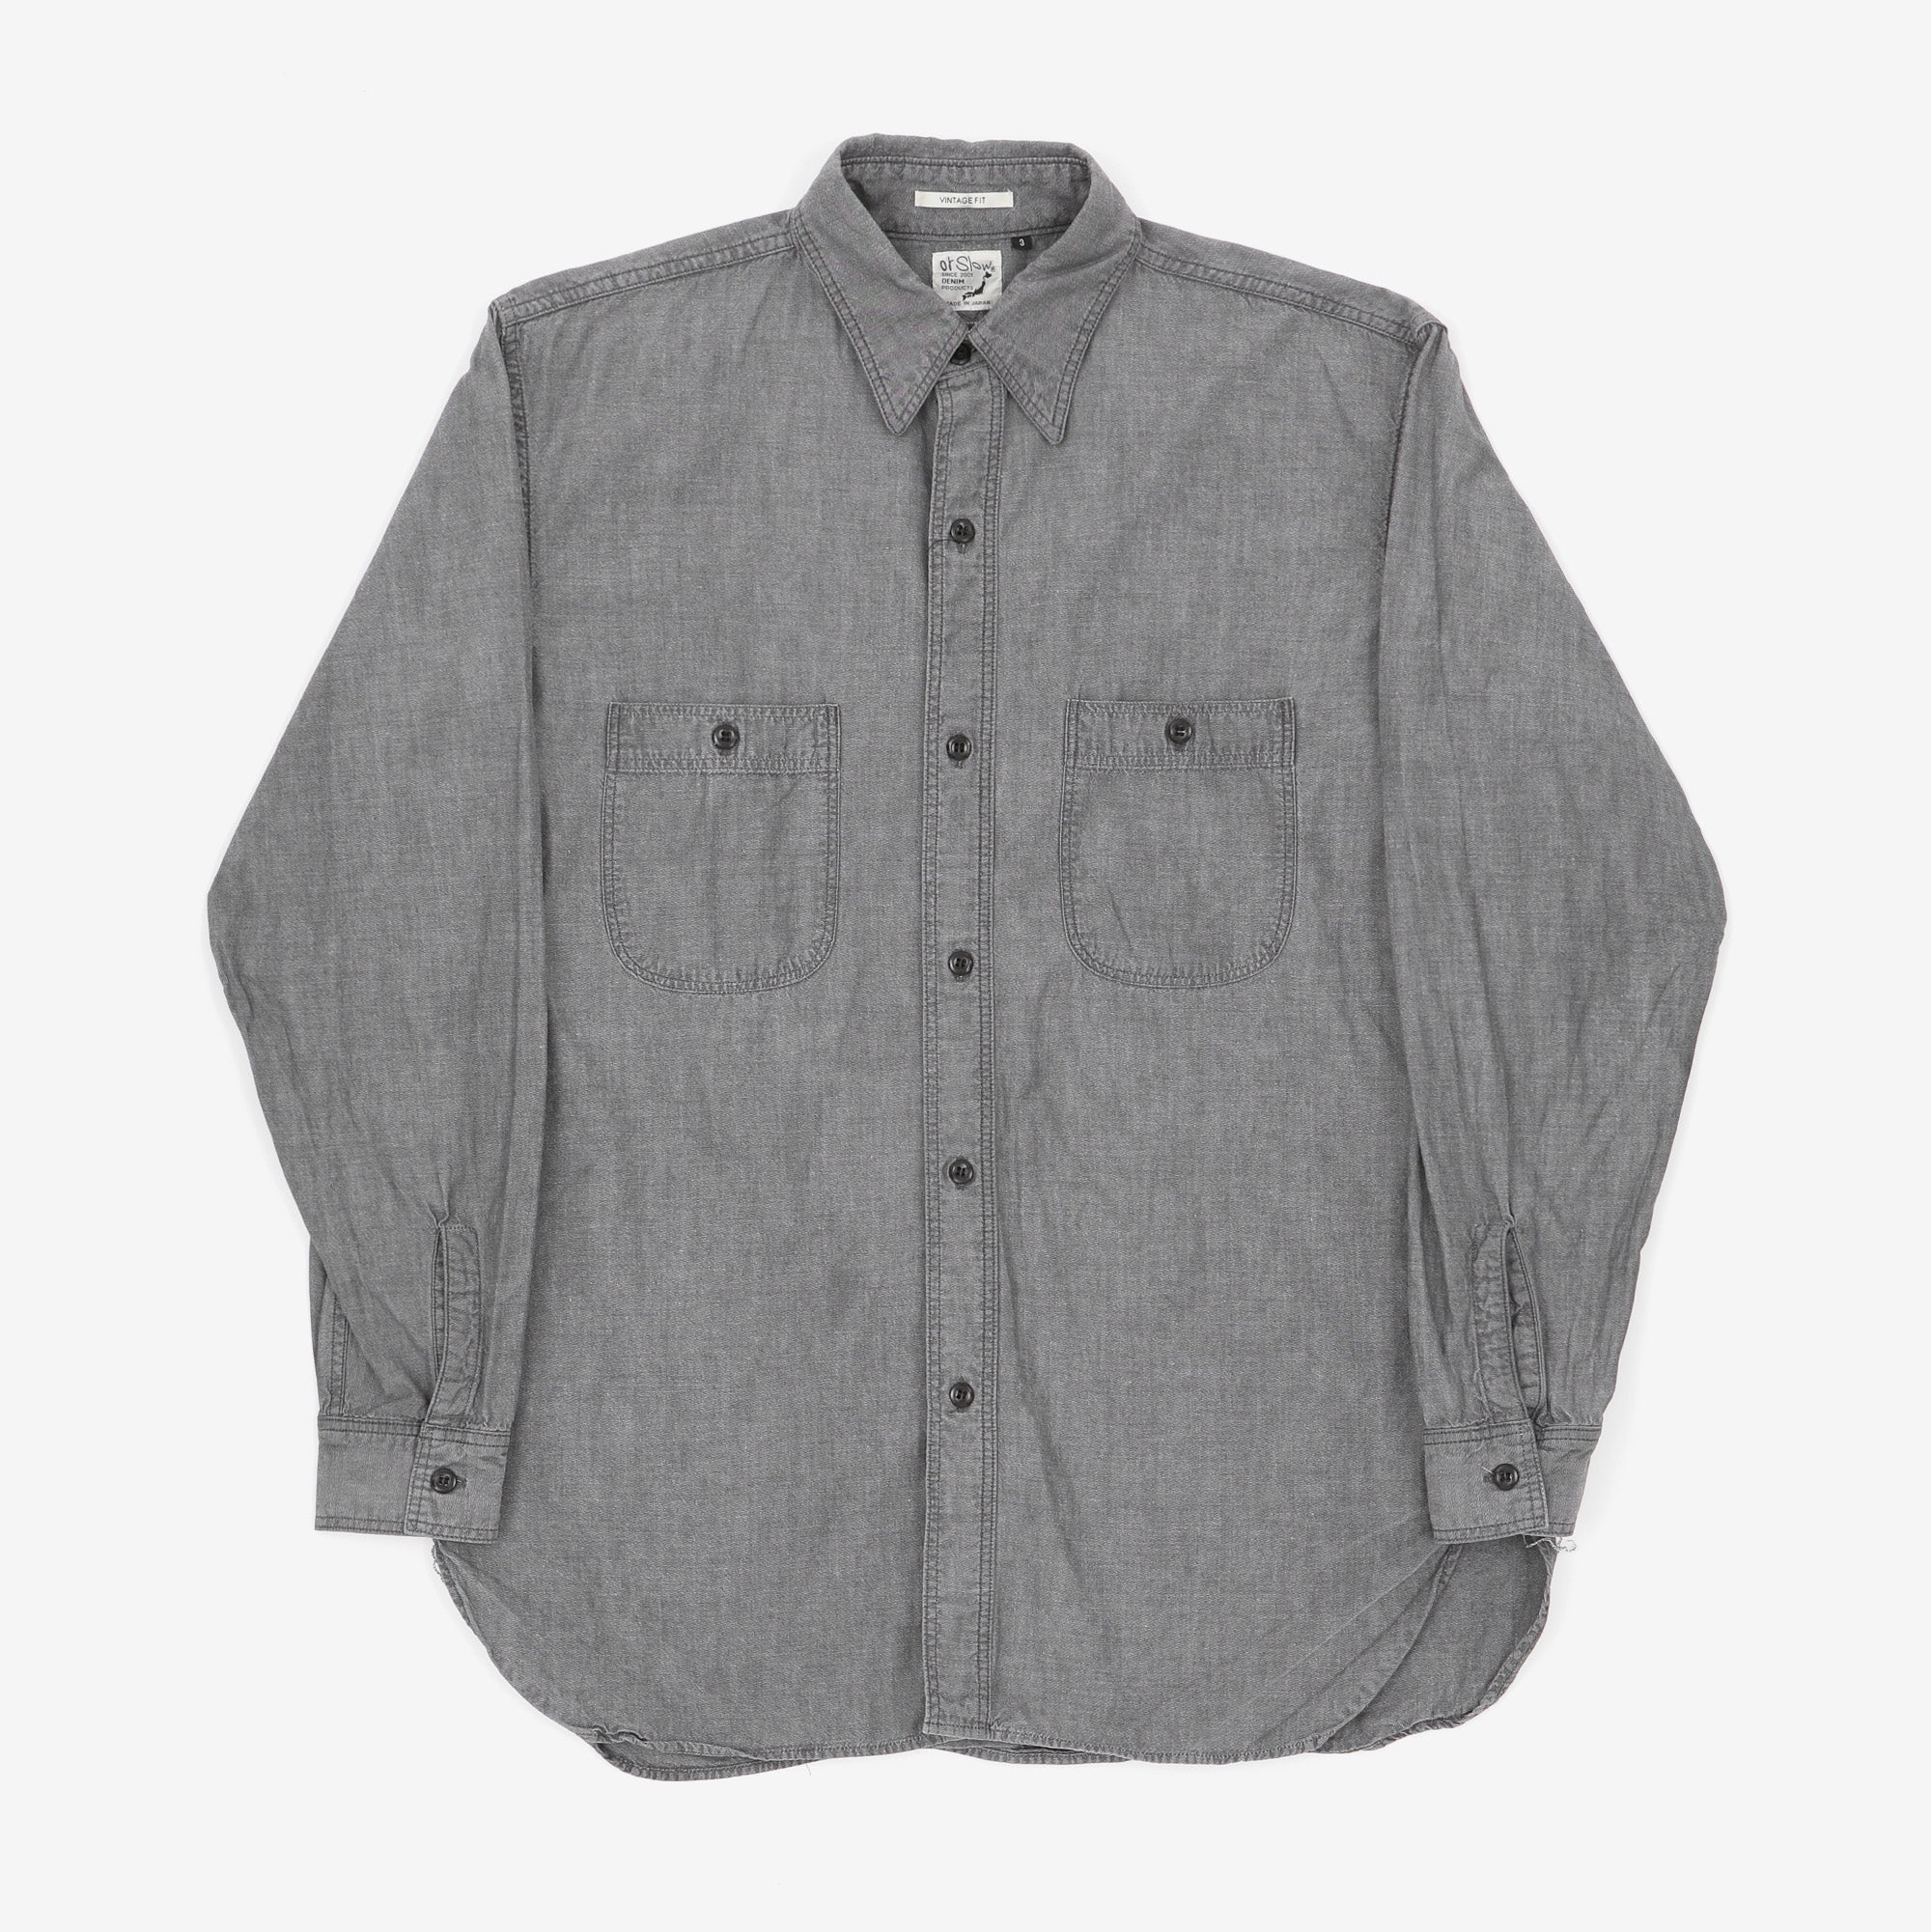 Vintage Fit Chambray Work Shirt